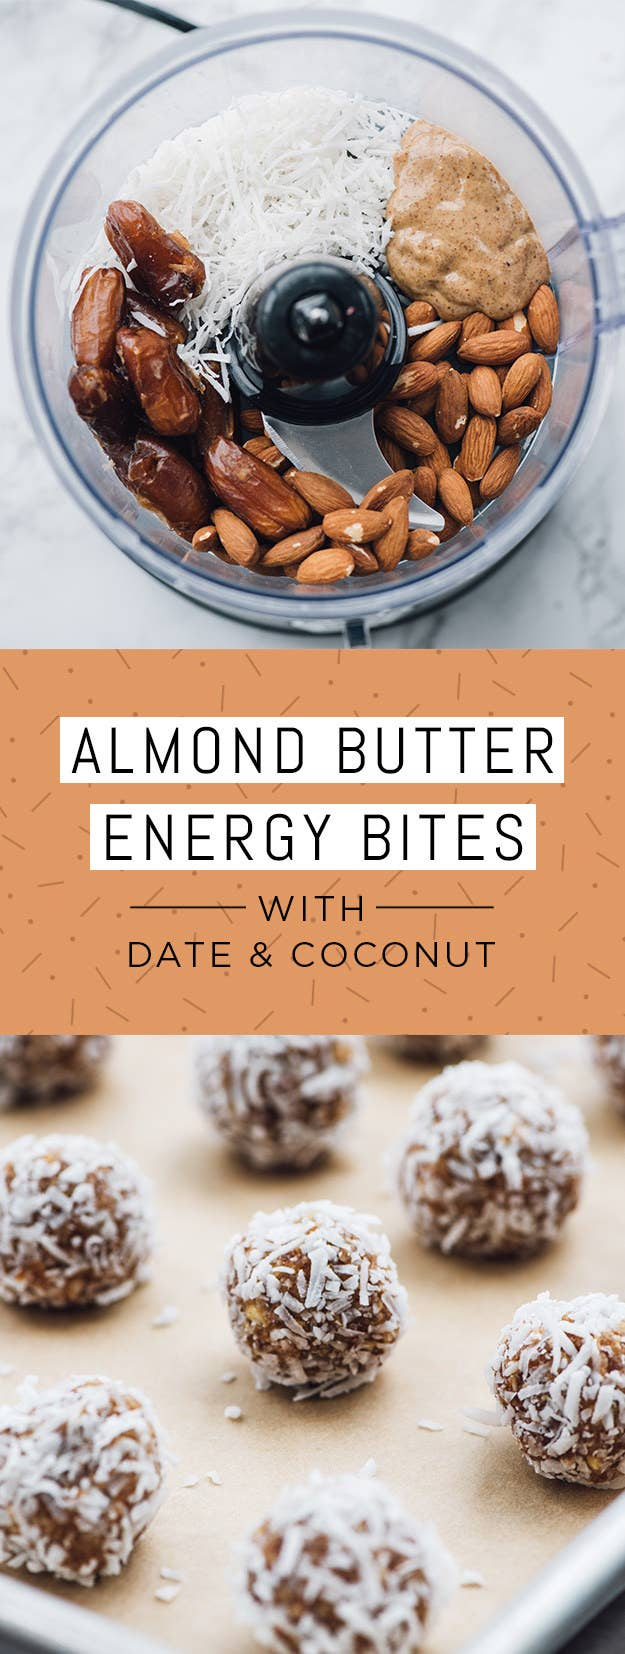 Ingredients: 2 cups medjool dates (pits removed); ½ cup roasted almonds; ½ cup almond butter; ½ cup unsweetened shredded coconut, divided; pinch of salt.To make: Combine dates, almonds, almond butter, salt, and ¼ cup of the coconut in a food processor and blend until a sticky dough forms. (If dough is not coming together, add one tablespoon of water and continue blending.) Then wet hands and form dough into 2 tablespoon-sized balls, and roll in remaining shredded coconut. Let dry at room temperature for 2 hours before serving. Store in an airtight container.